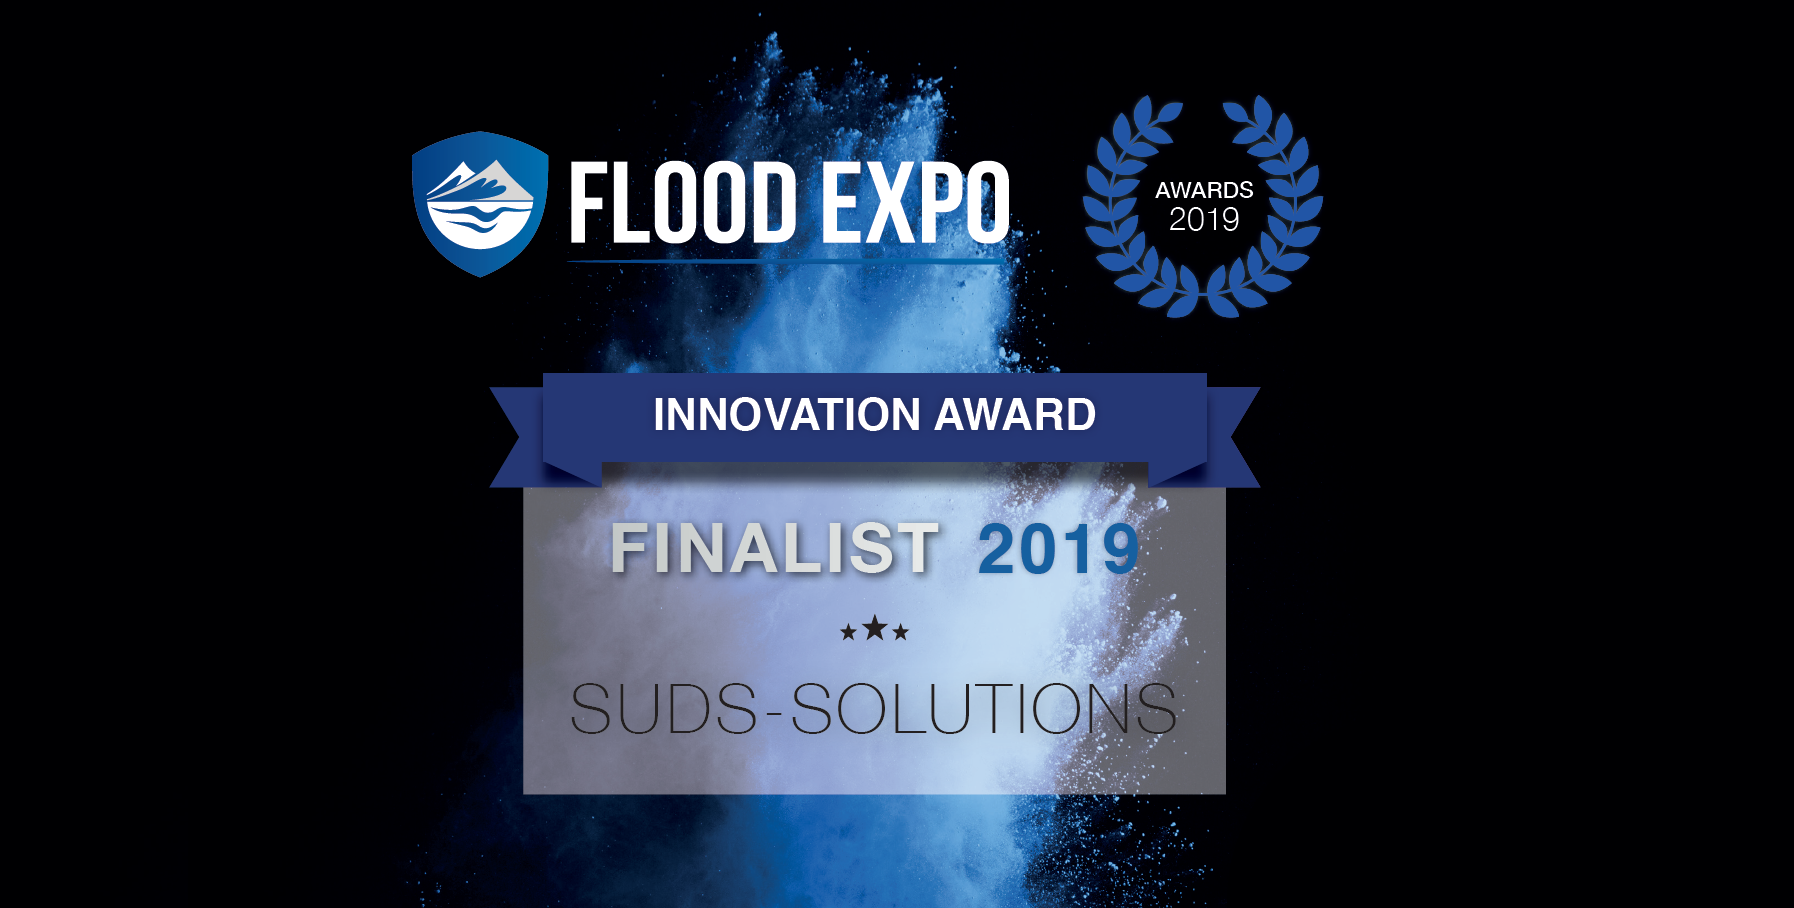 Flood Expo Finalist 2019